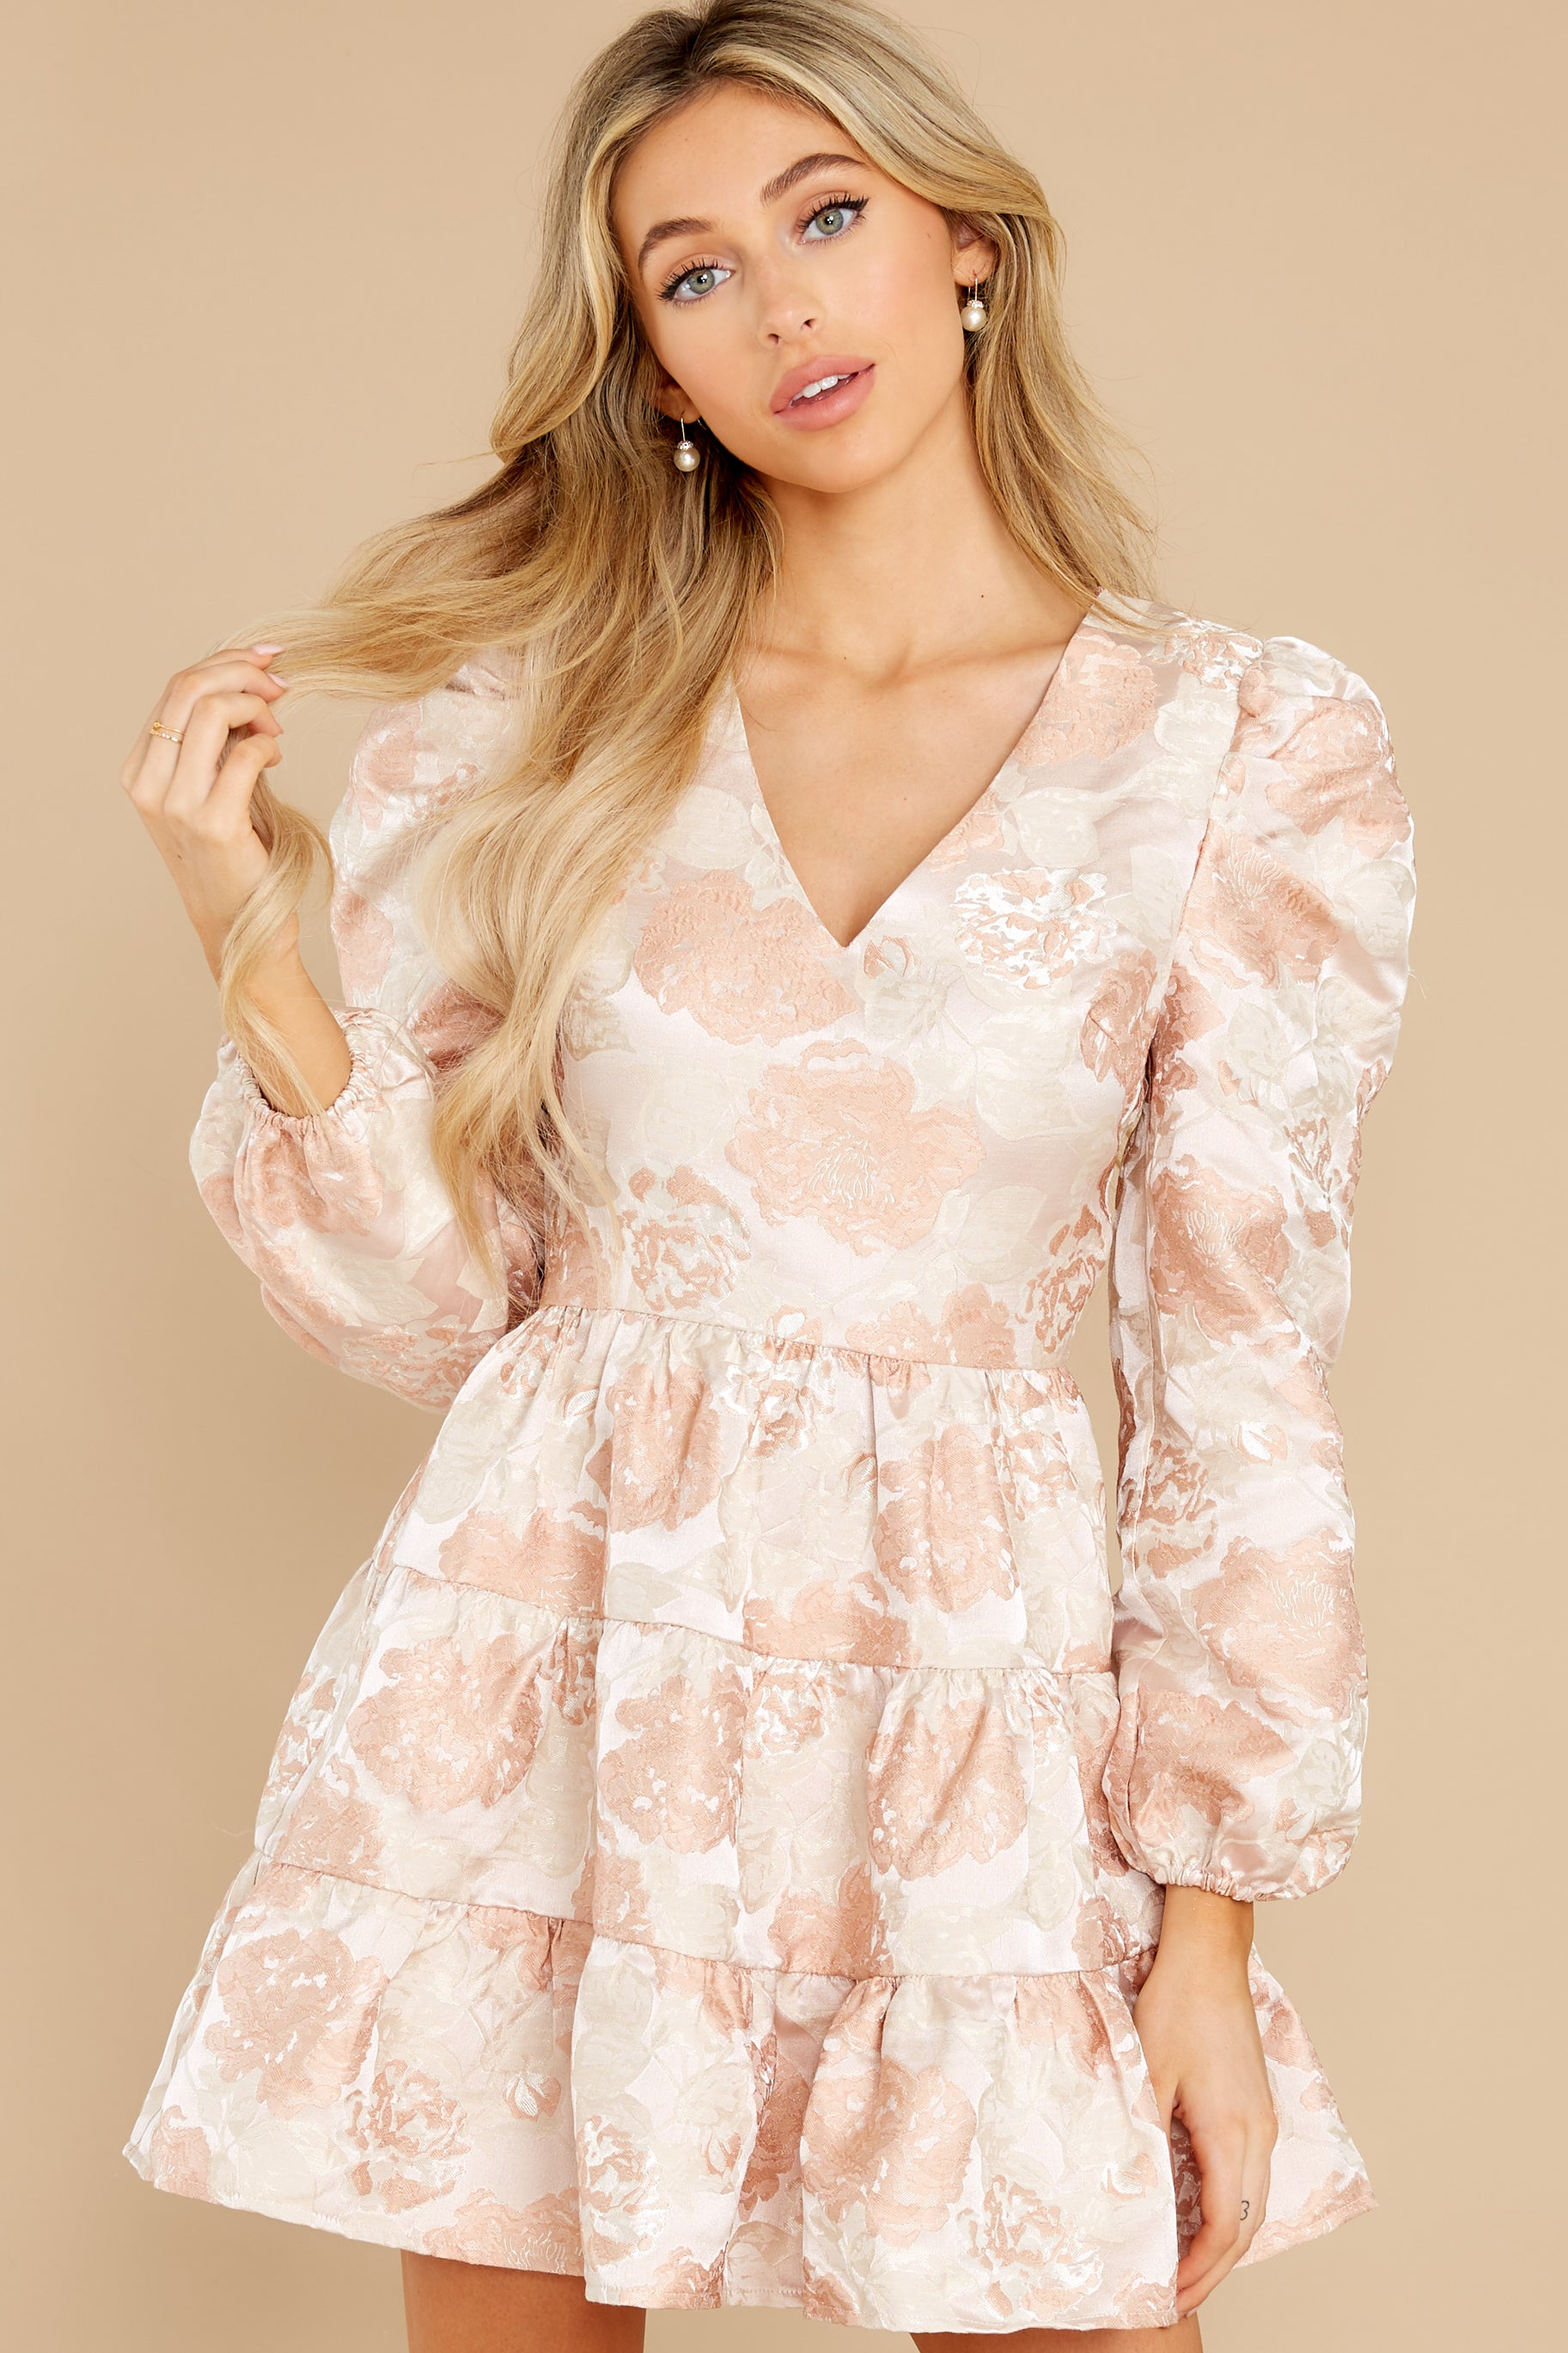 5 Celebratory Cheers Blush And Beige Floral Print Dress at reddress.com